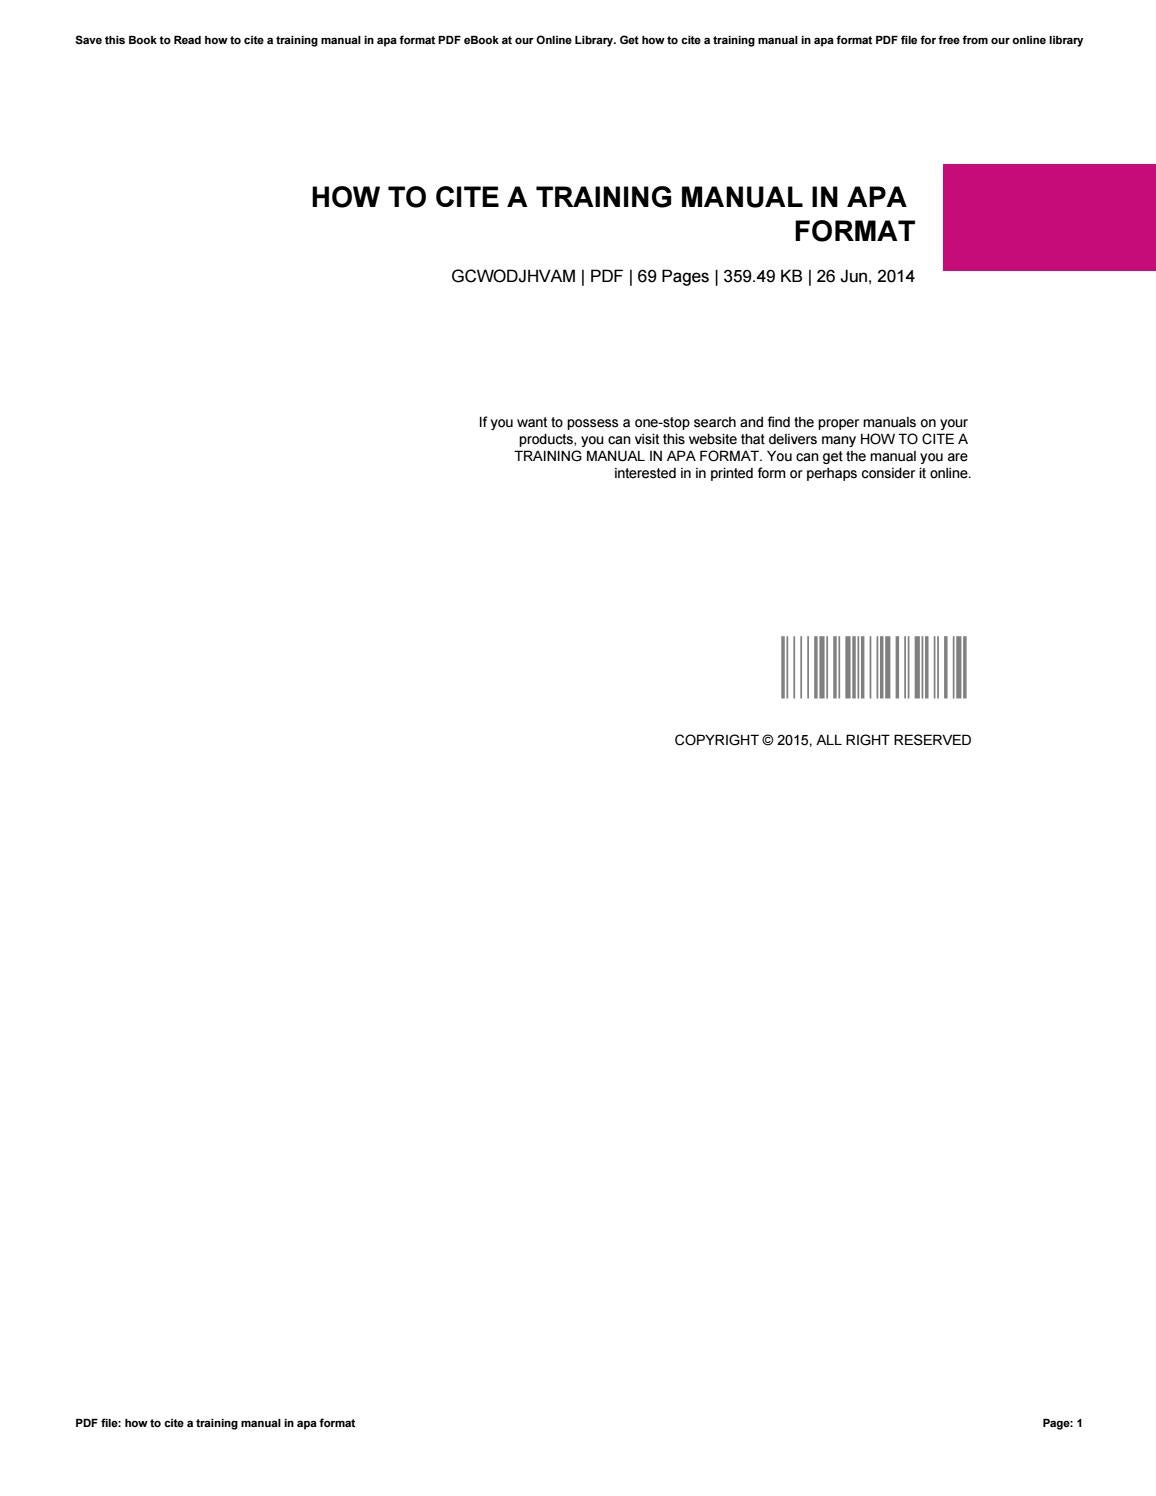 How to cite a training manual in apa format by GerardTindal12551 - issuu